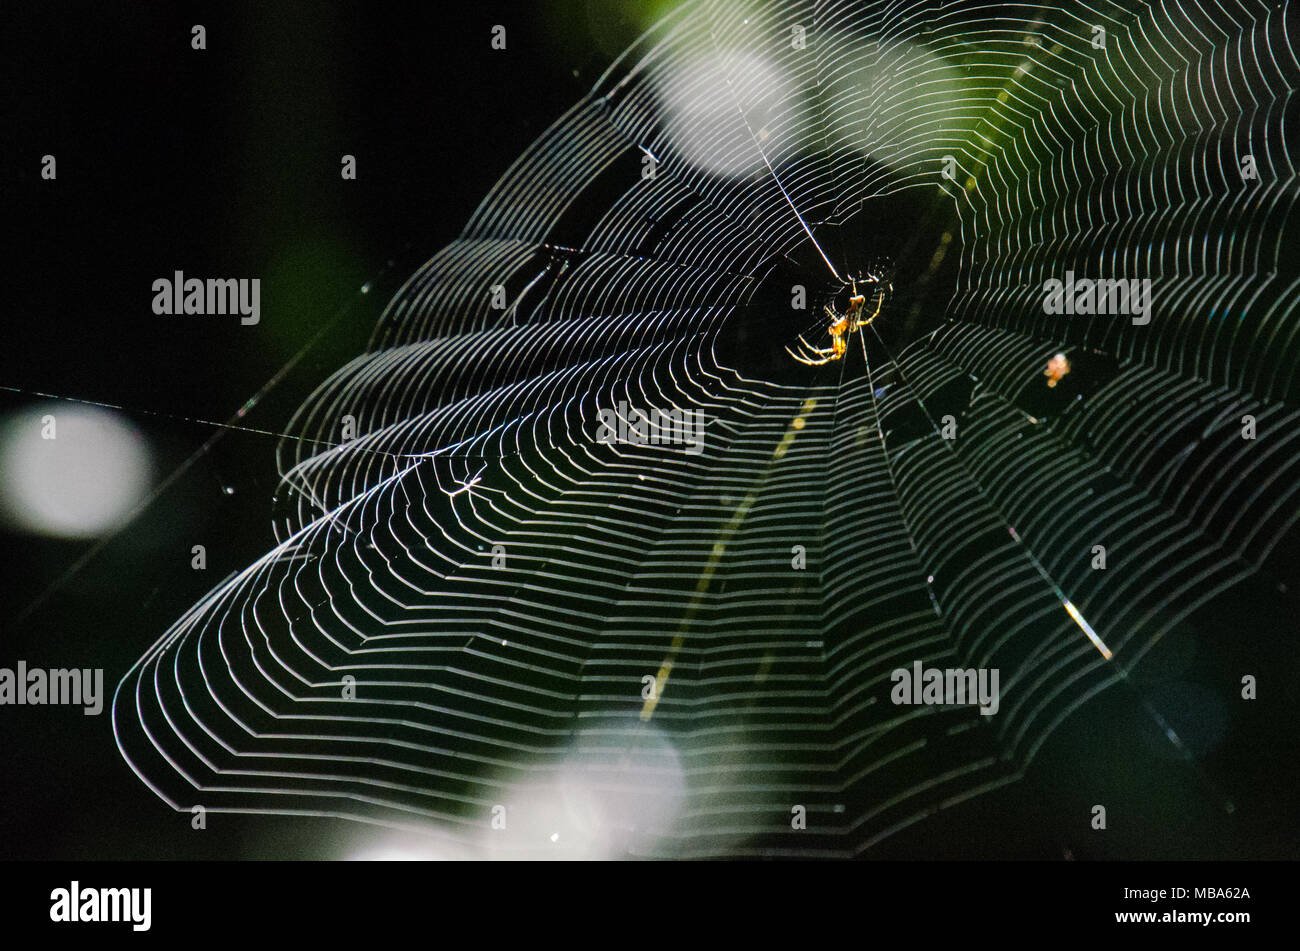 Spider in centre of large web lit by morning light with natural green background. Spiderweb construction with spider. - Stock Image